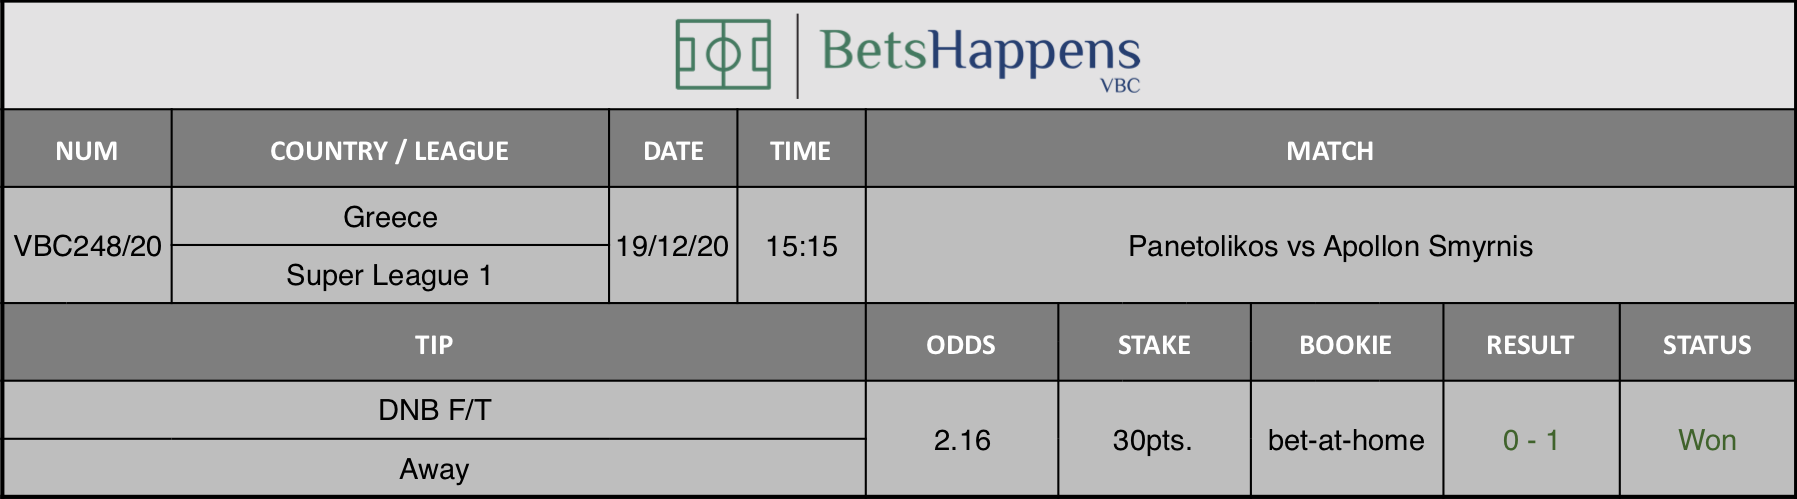 Results of our tip for the Panetolikos vs Apollon Smyrnis match where DNB F/T Away is recommended.